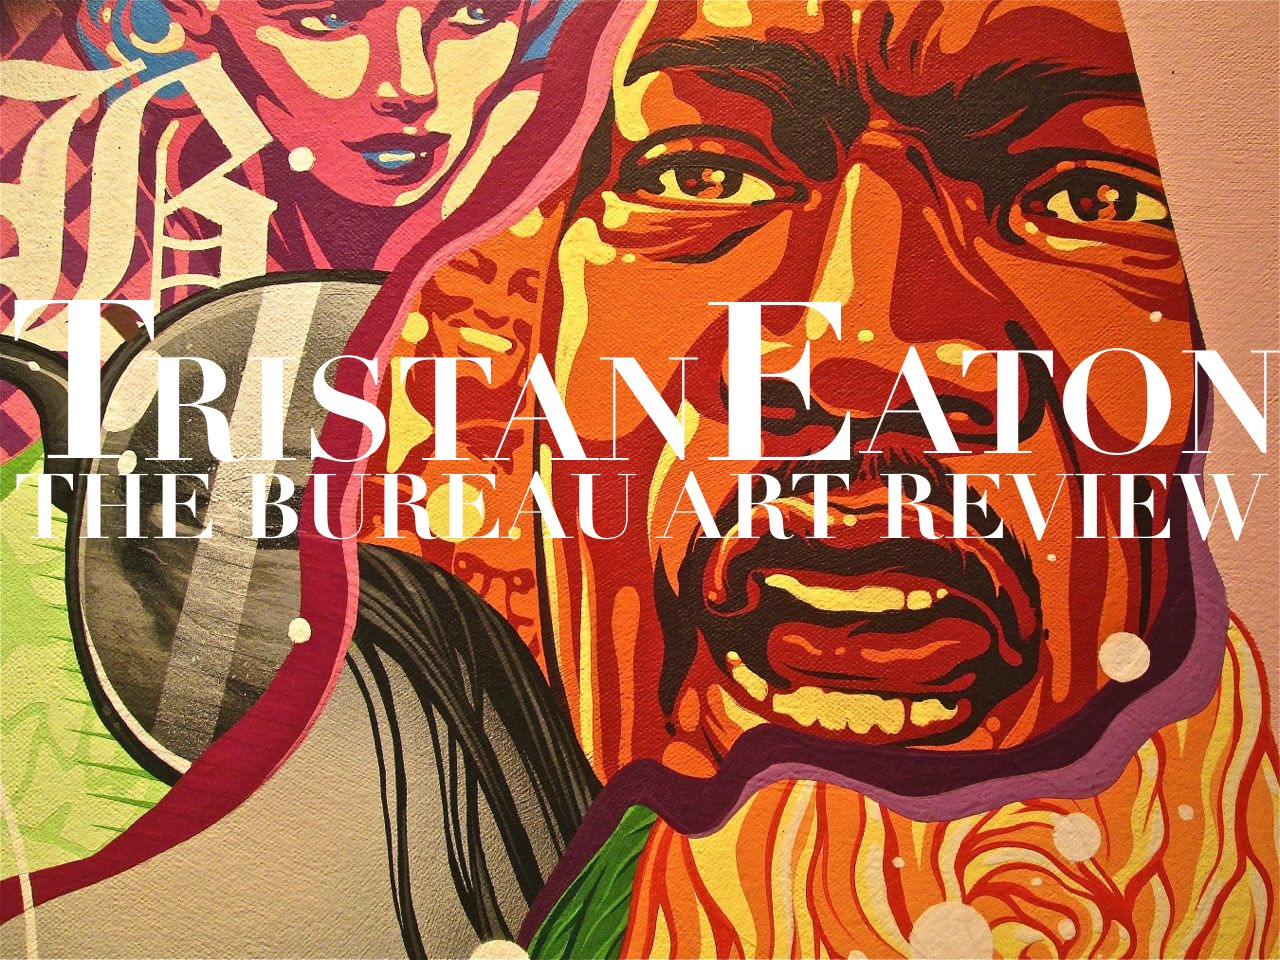 TRISTAN EATON ART Review